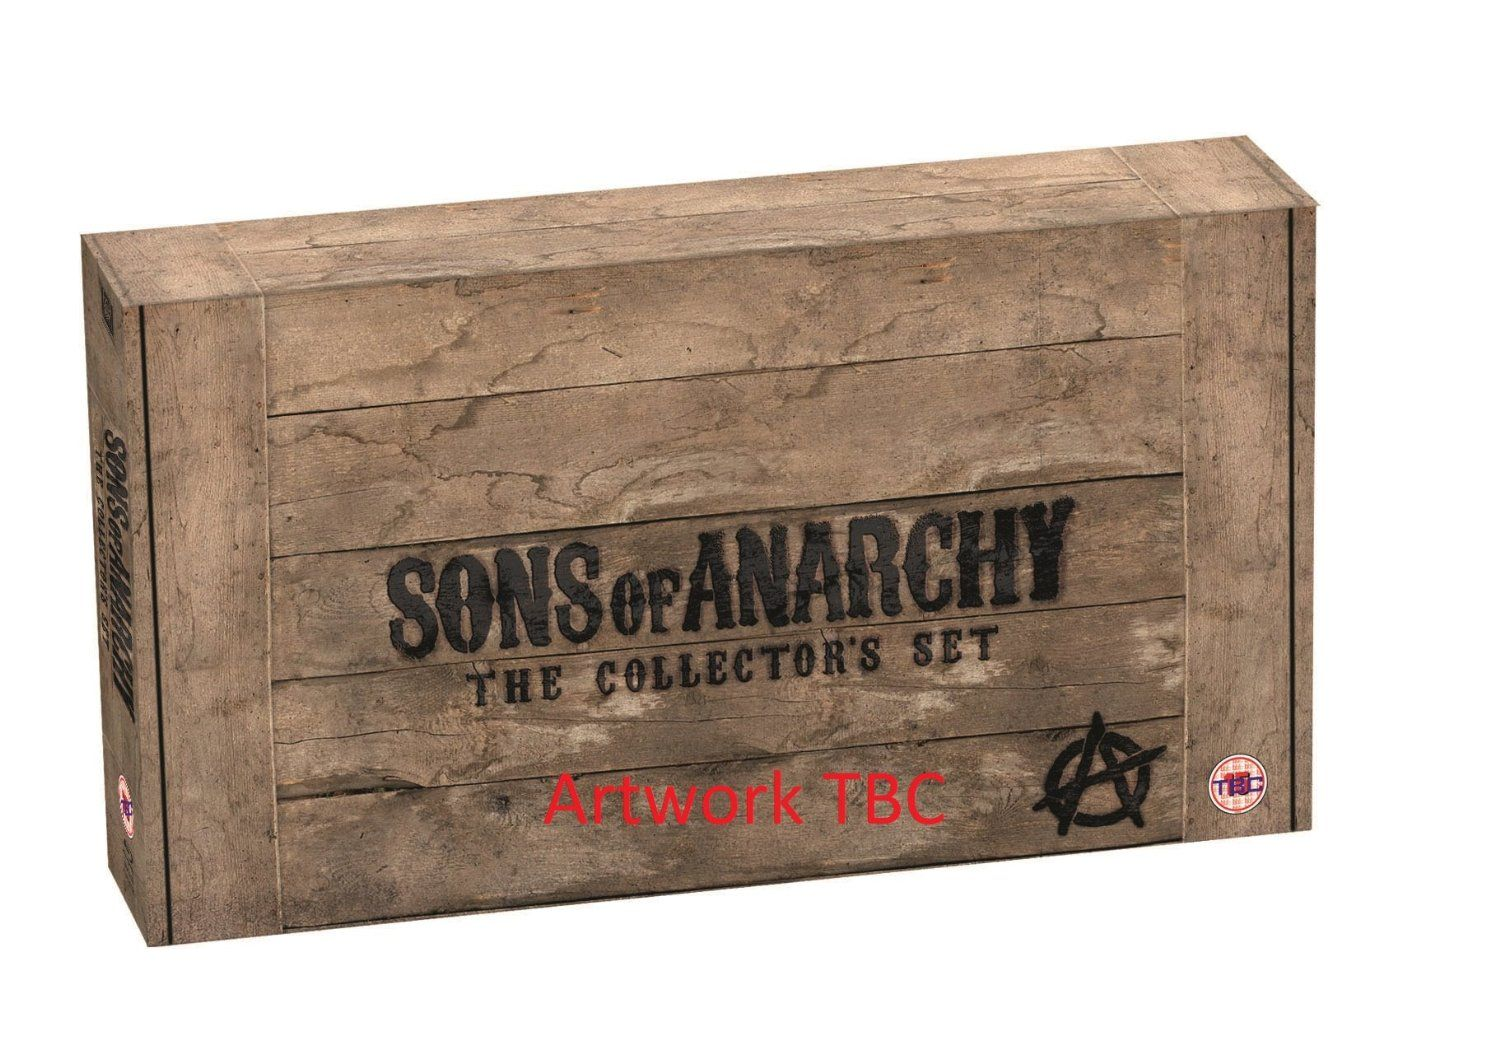 Early Unreleased Uk Blu Ray Region B Packaging And Artwork From Sons Of Anarchy The Complete Series Feat Courtney Love In Sons Of Anarchy Anarchy Blu Ray